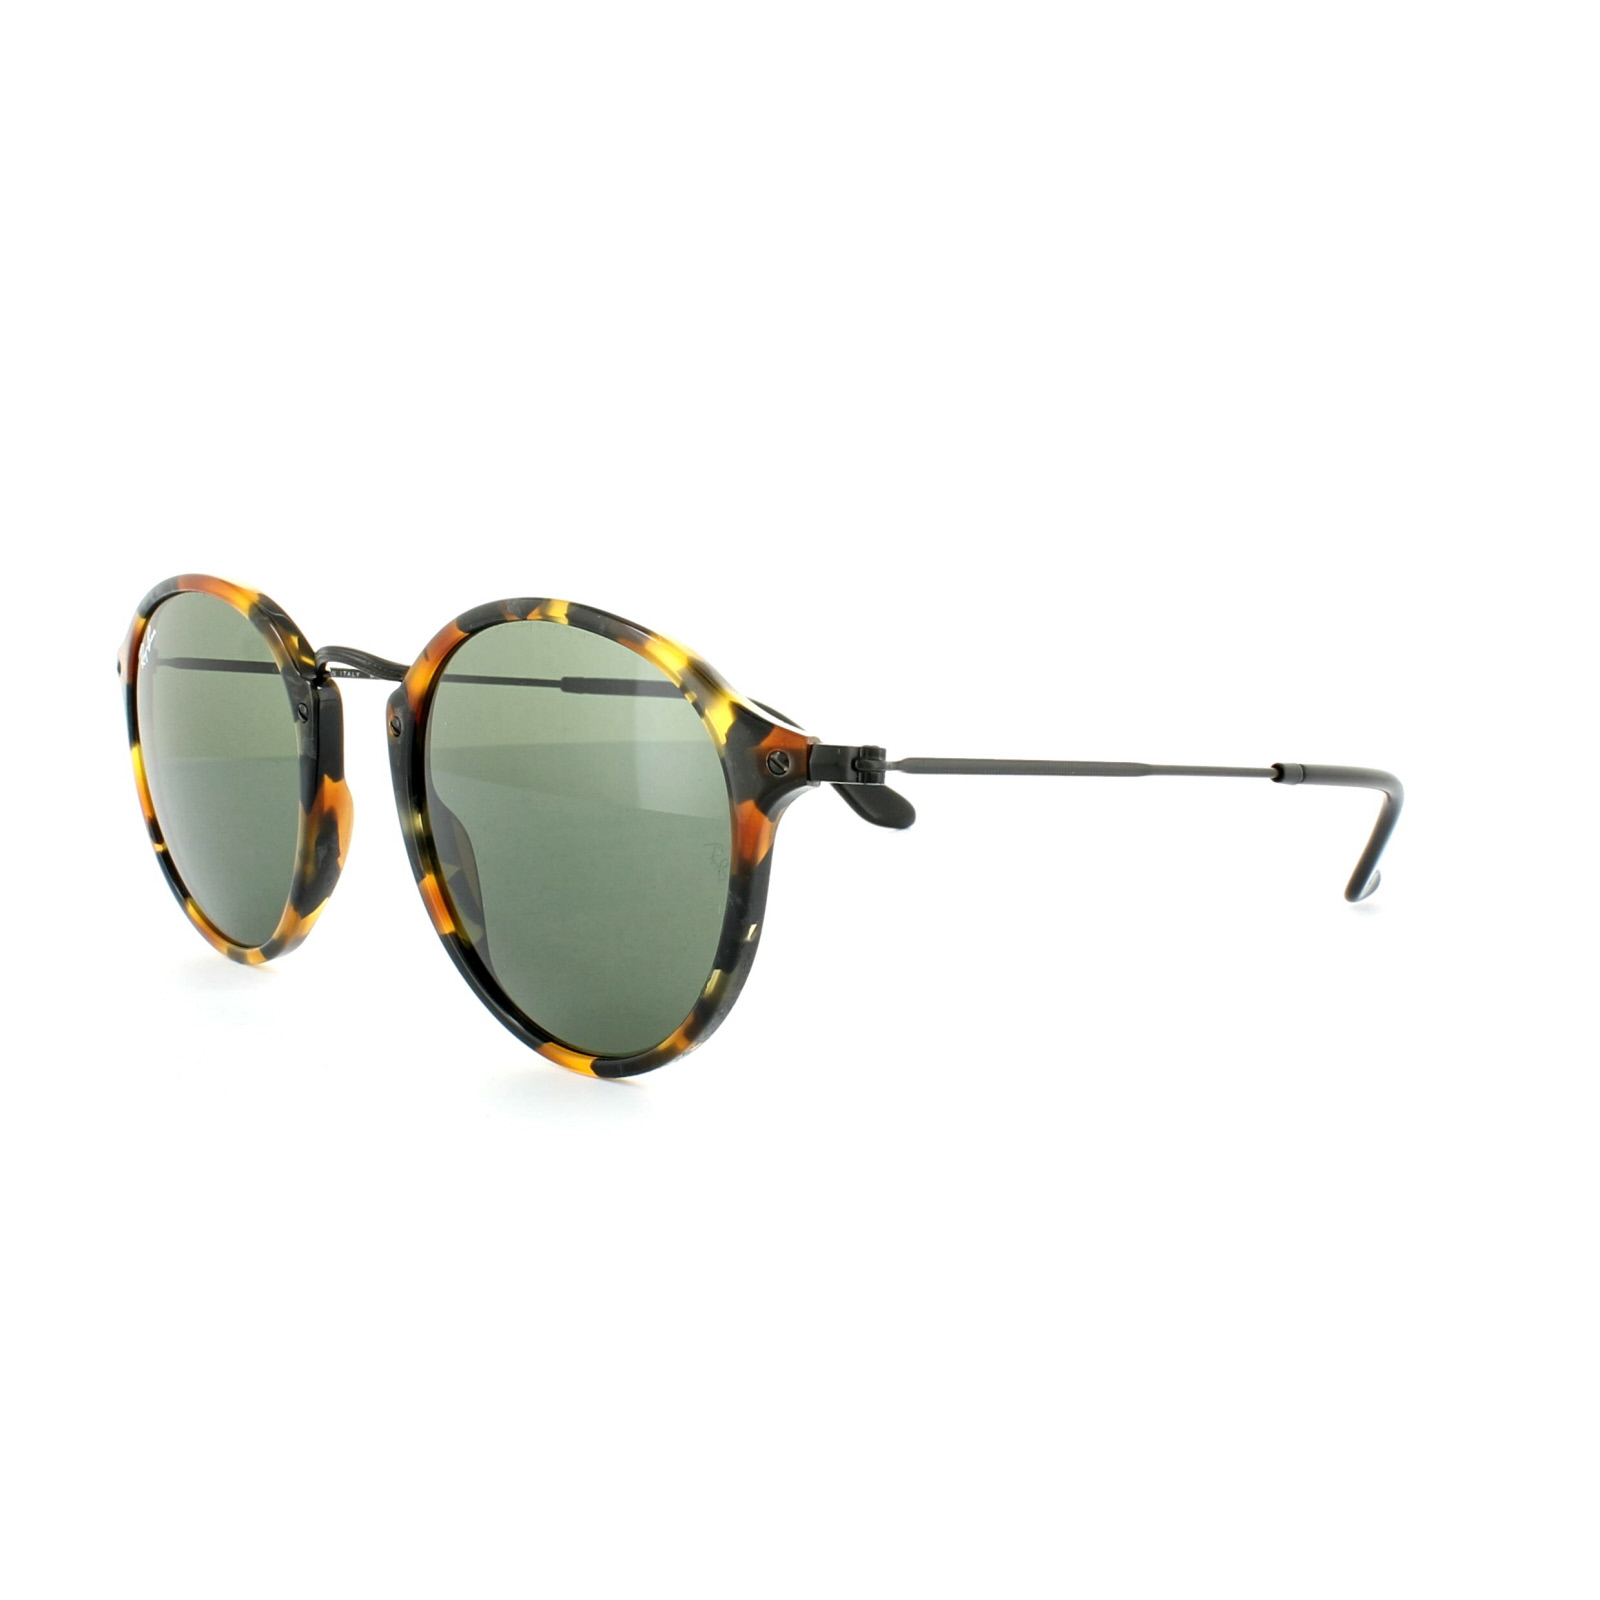 Details about Ray-Ban Sunglasses Round Fleck 2447 1157 Green Spotted Black  Havana 49mm eb83d8efd3